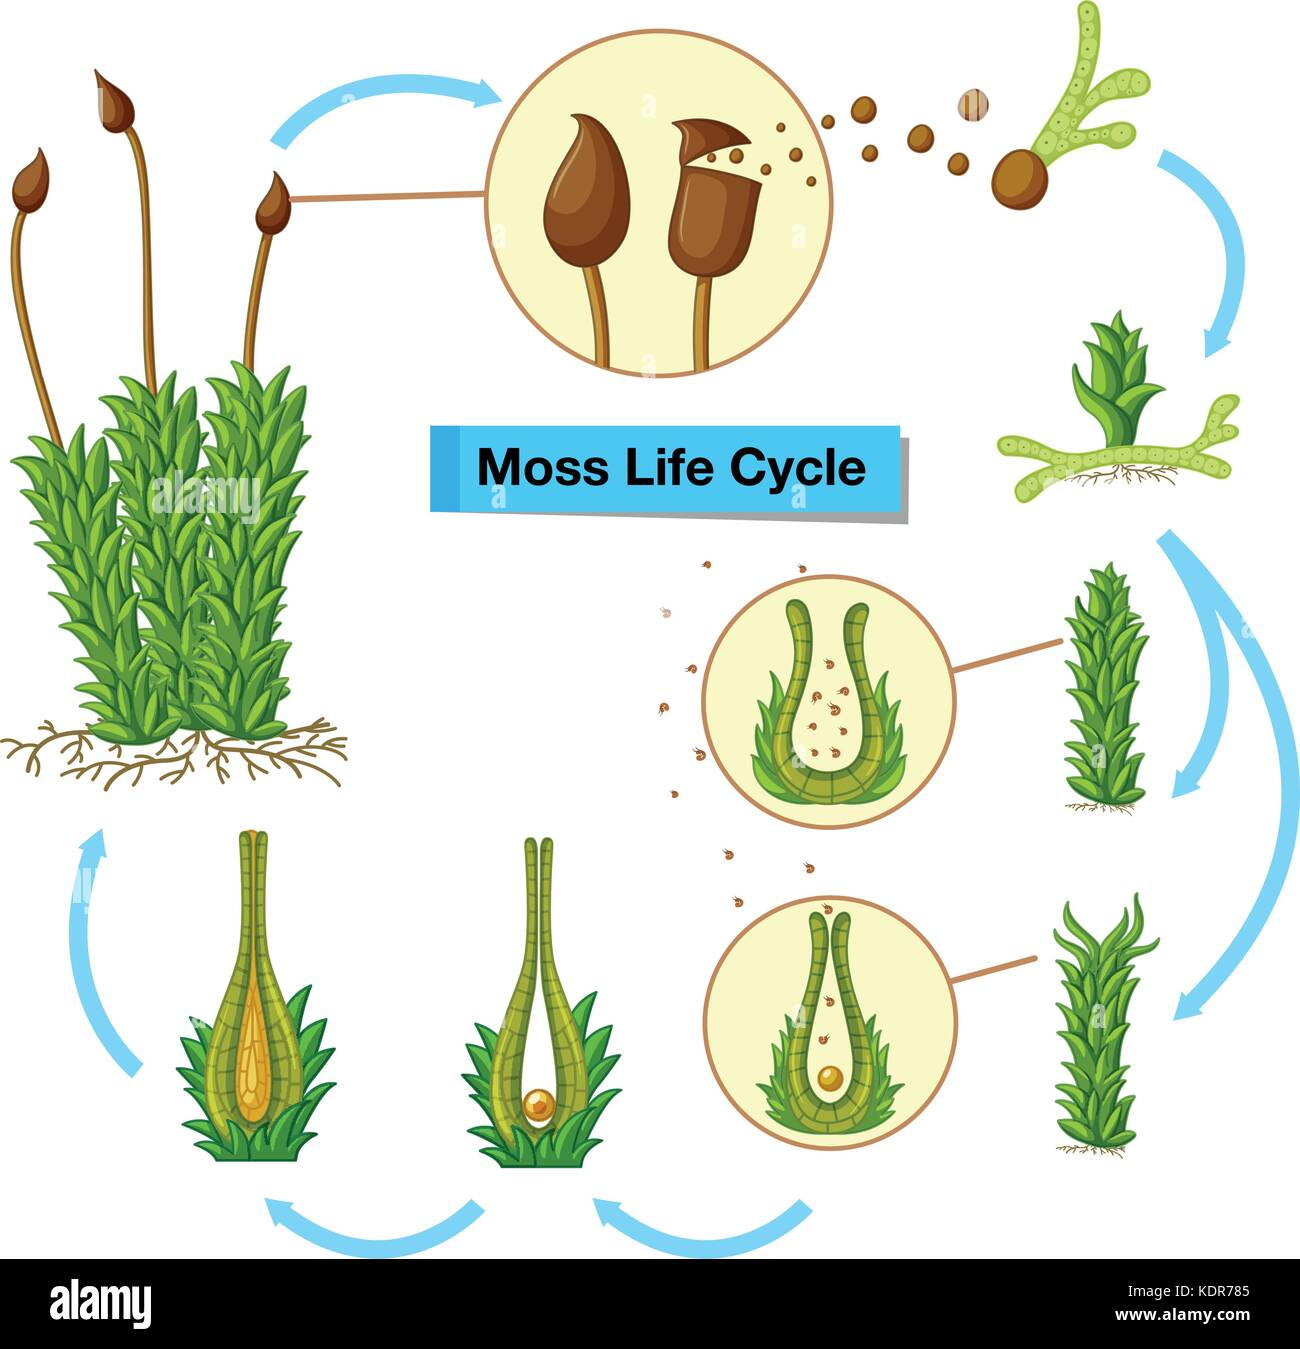 life cycle of a labeled moss diagram wiring for vw beach buggy drawing stock photos and images alamy